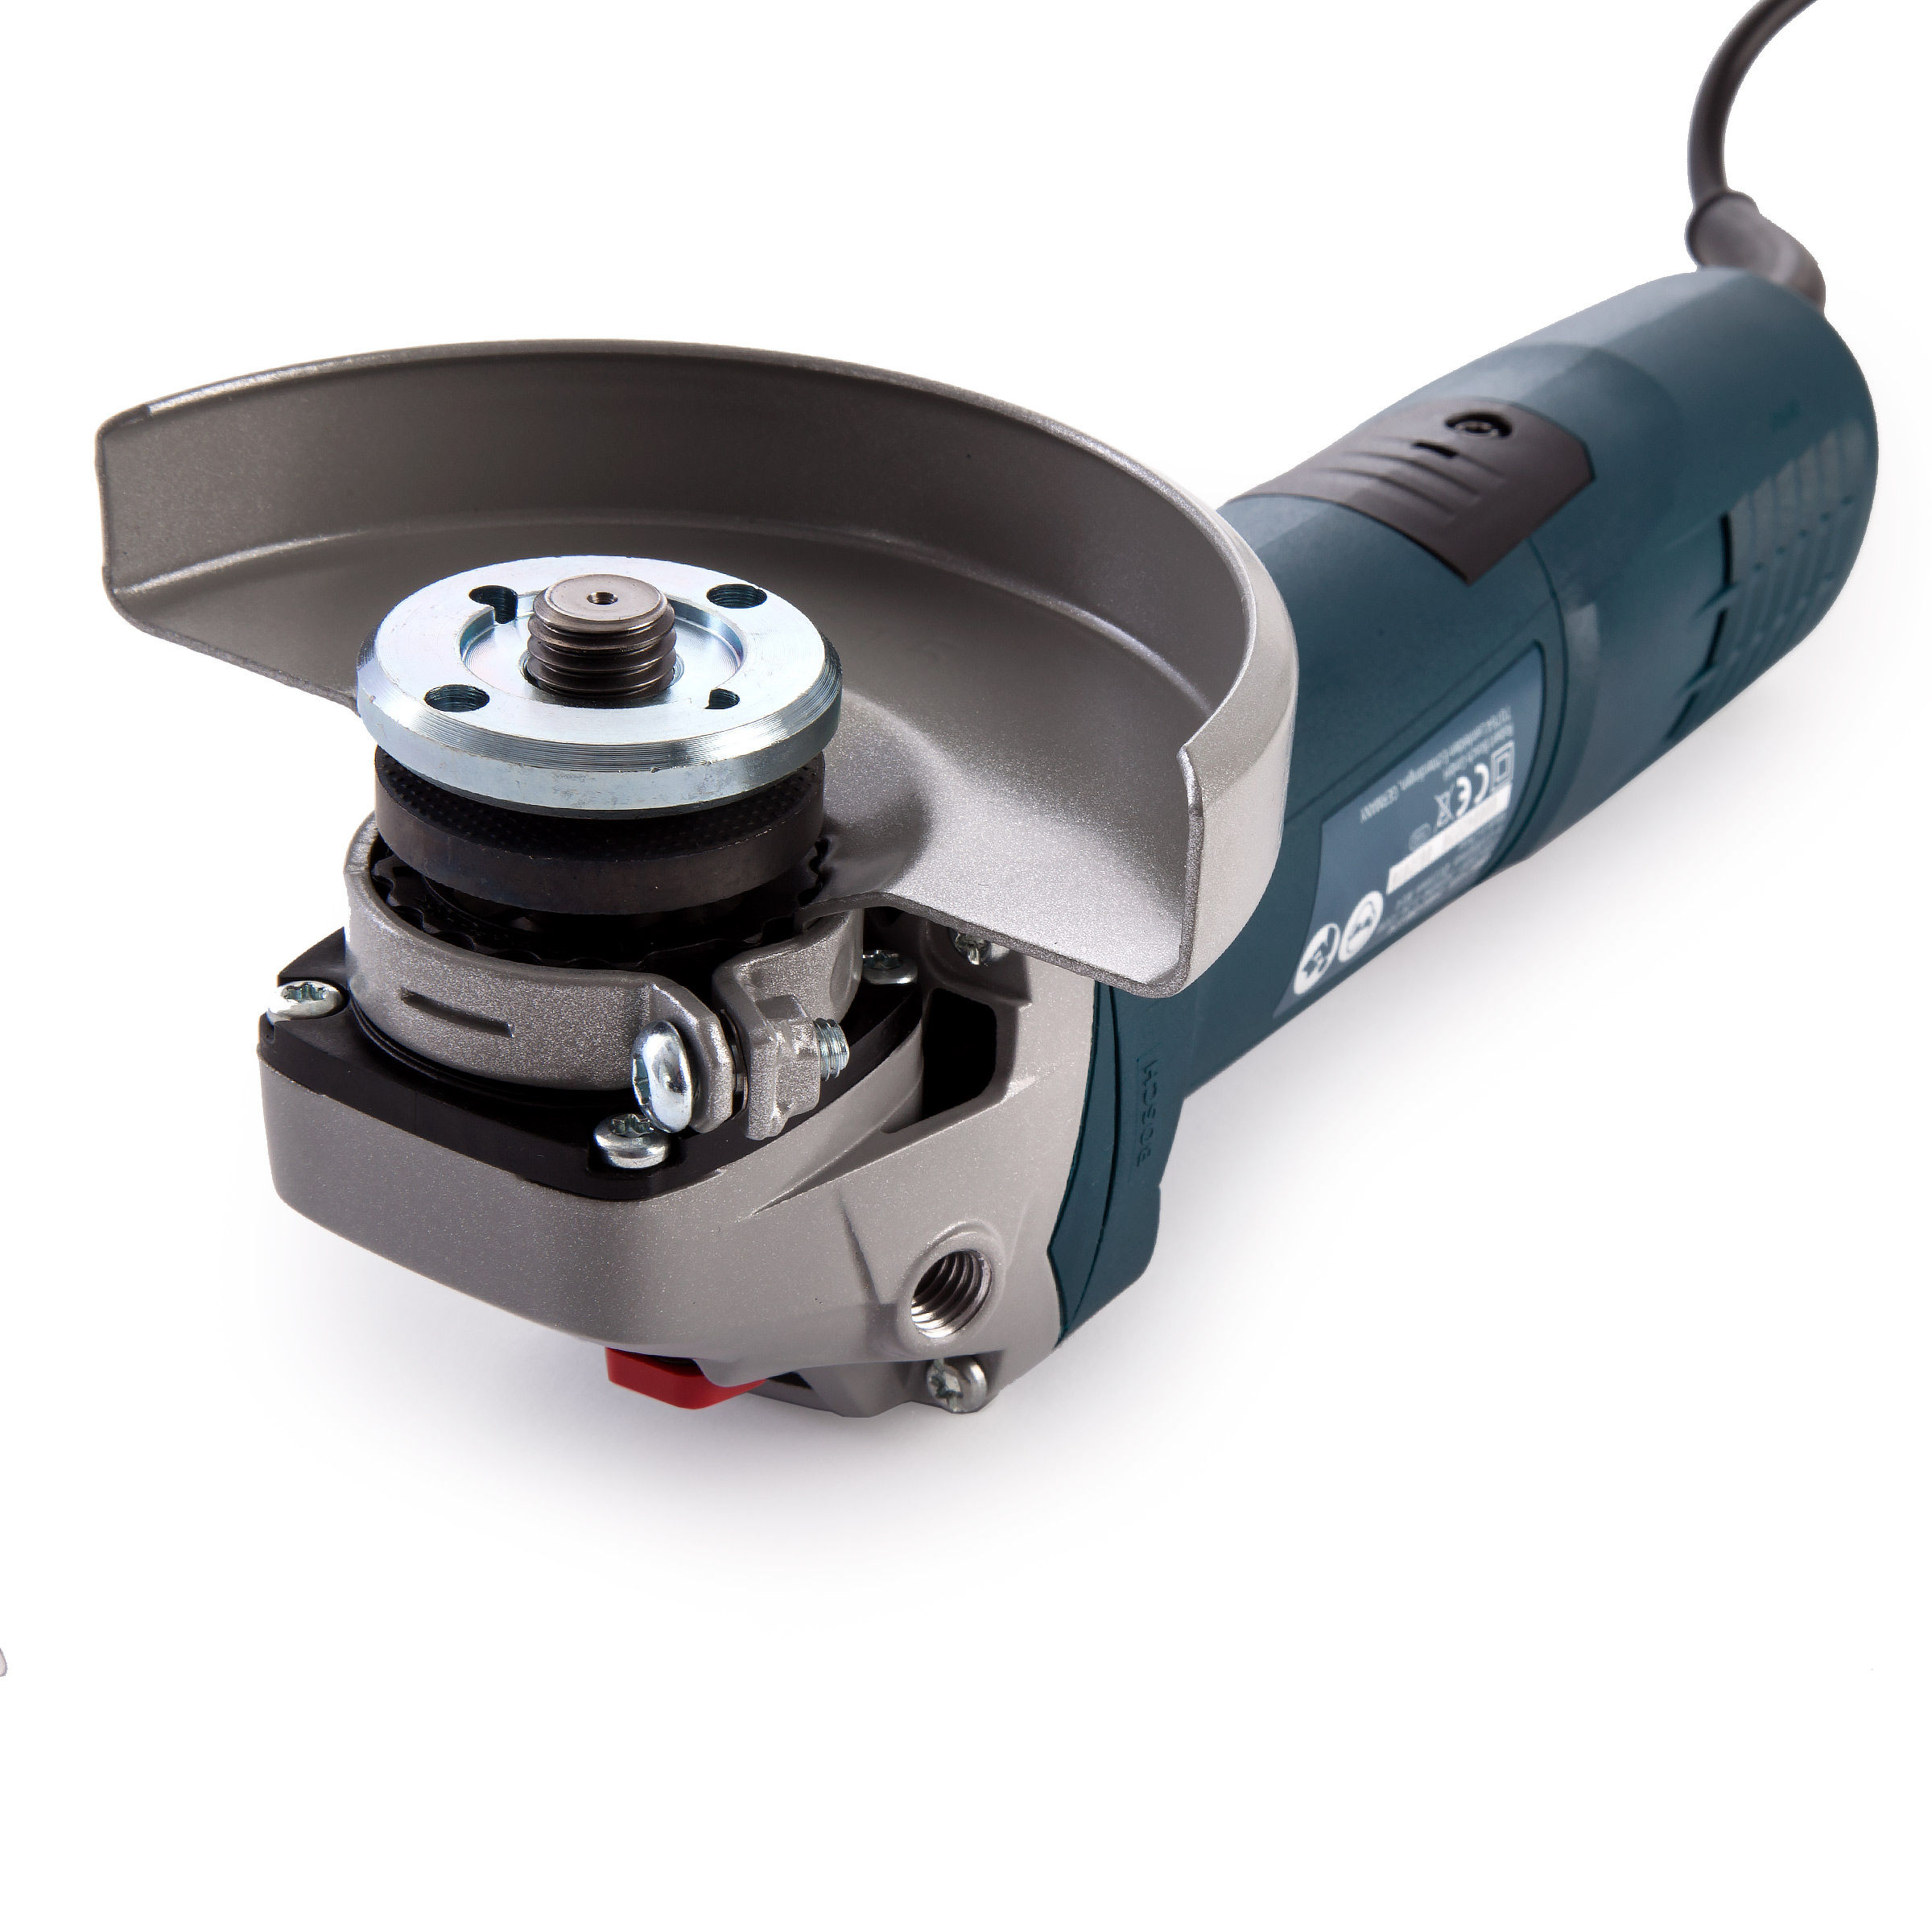 Toolstop Bosch Gws7 115 Professional Angle Grinder 115mm